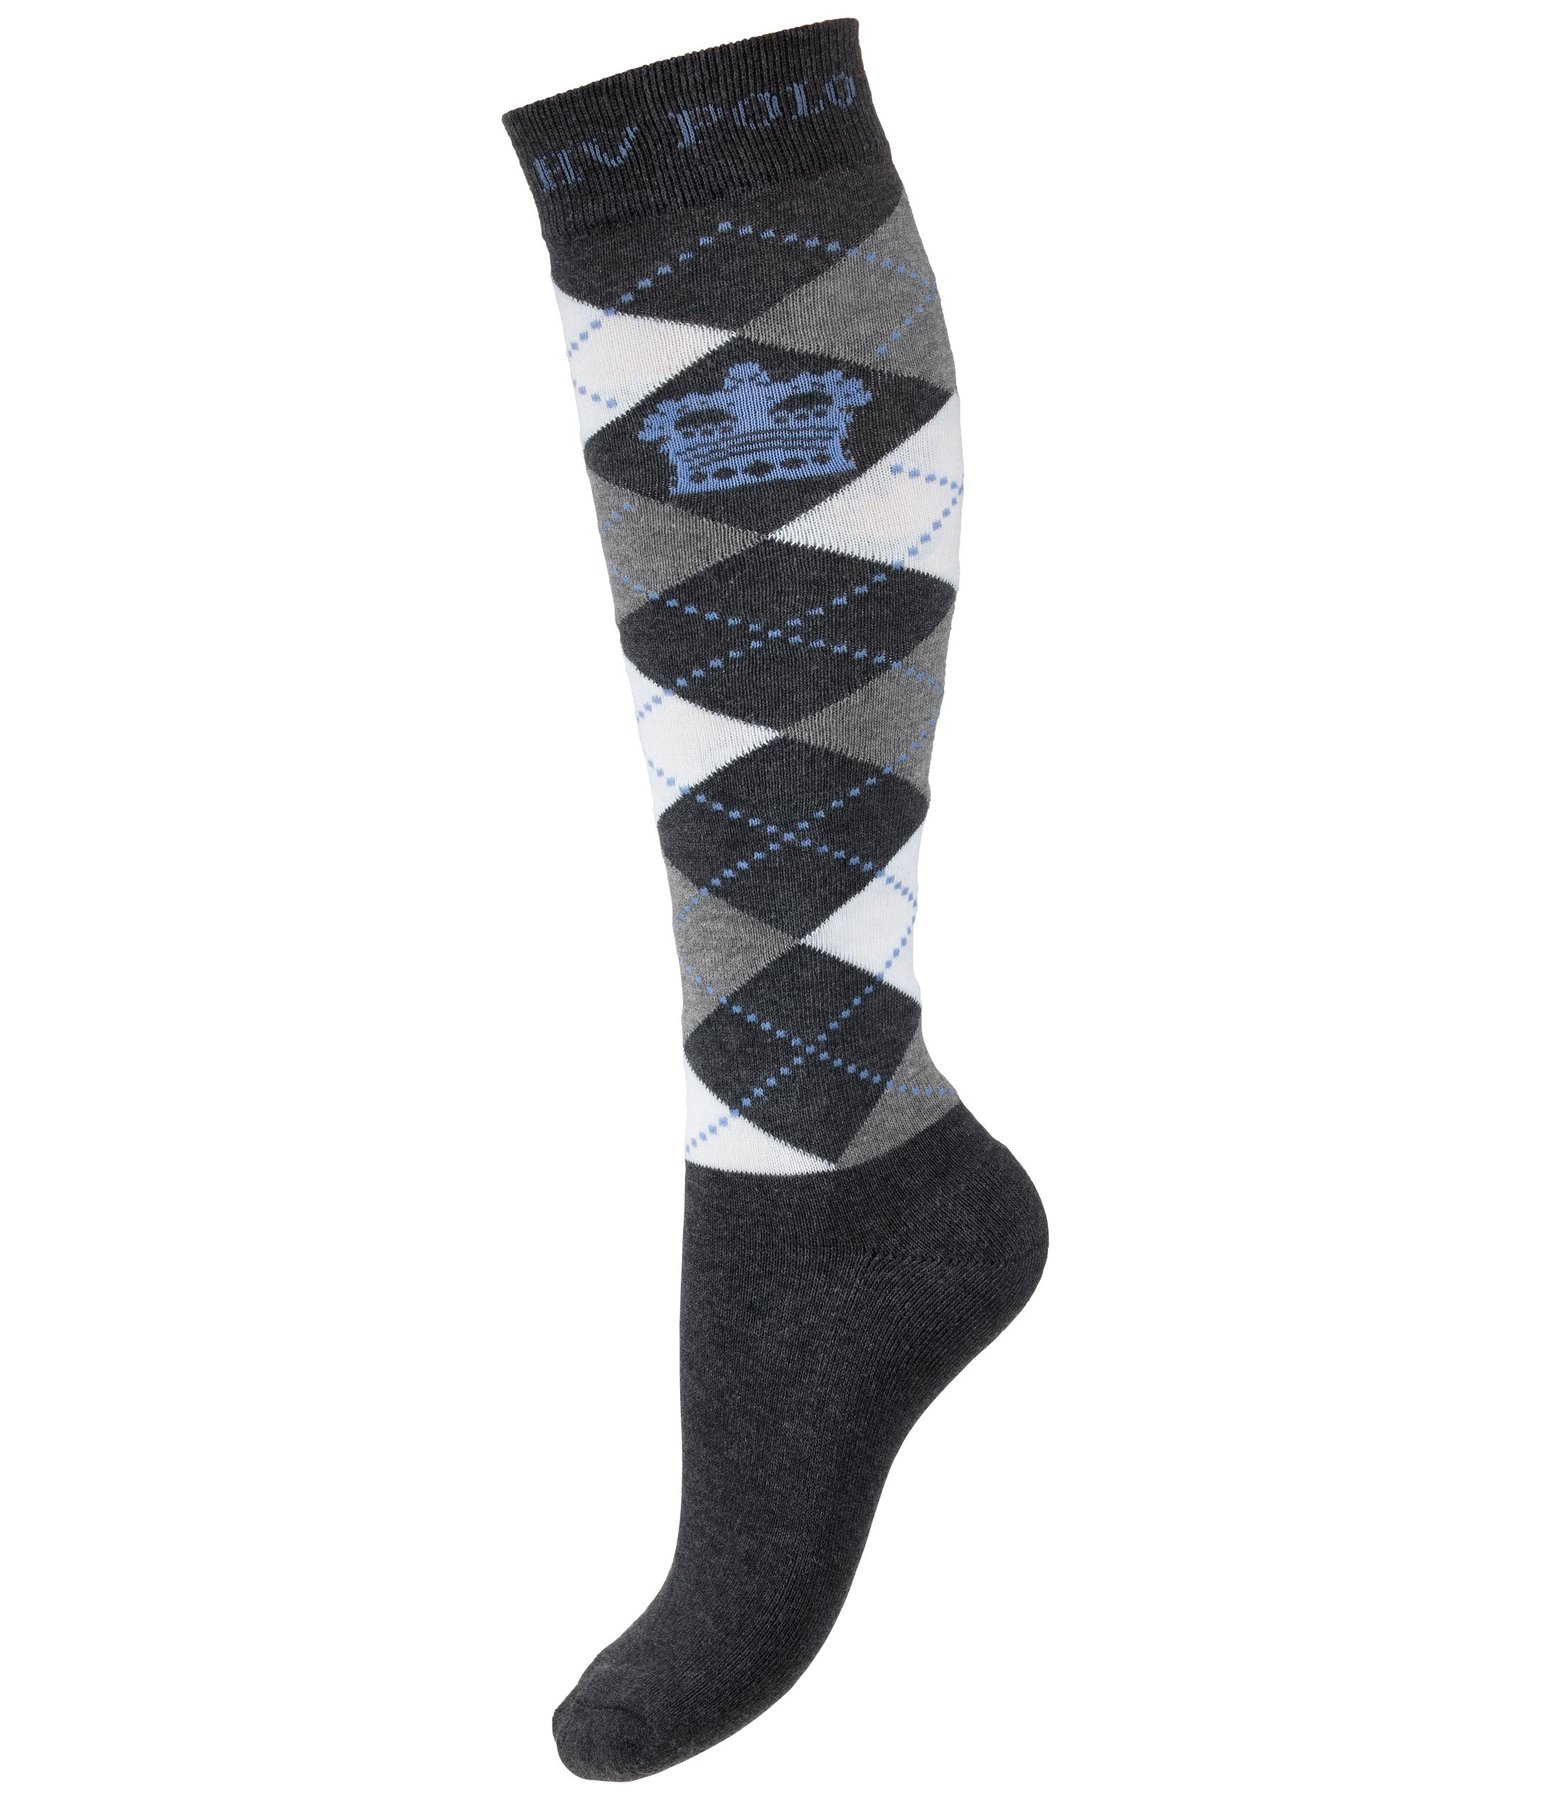 8537fb9a06a7 Knee Socks Argyle - Knee-Highs   Socks - Kramer Equestrian